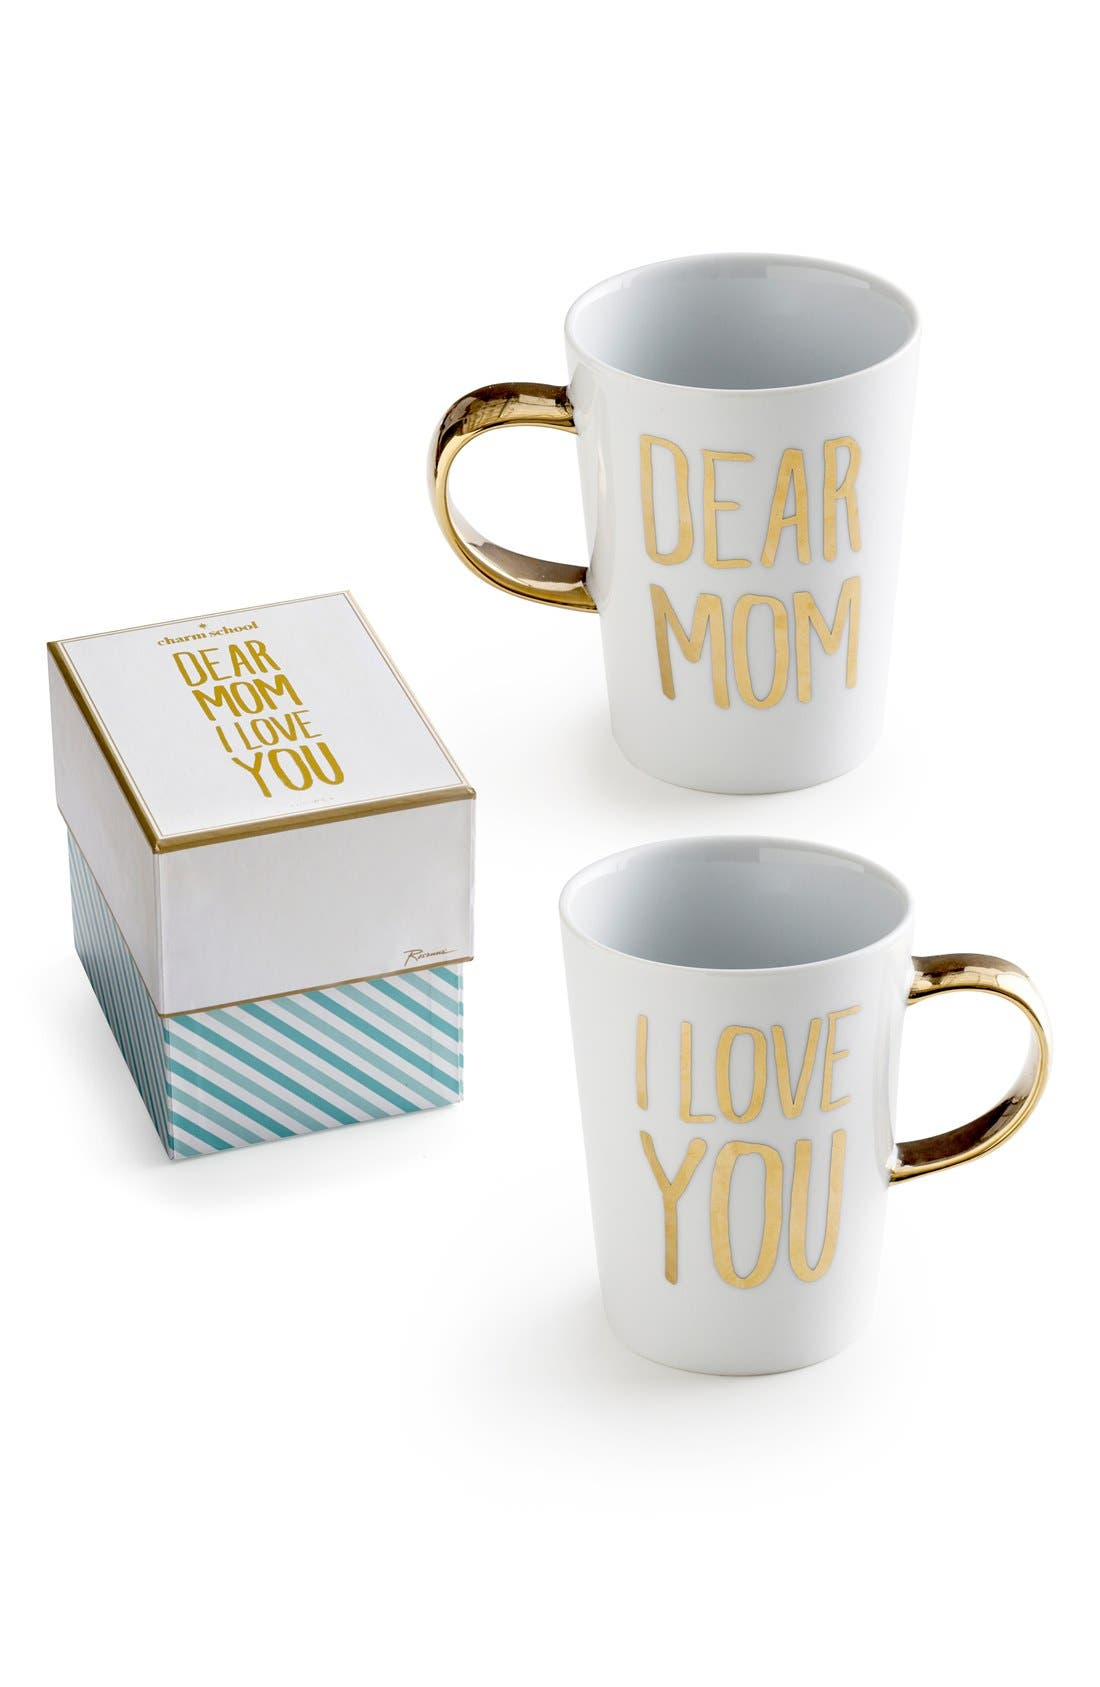 'Dear Mom I Love You' Porcelain Coffee Mug,                         Main,                         color, 100